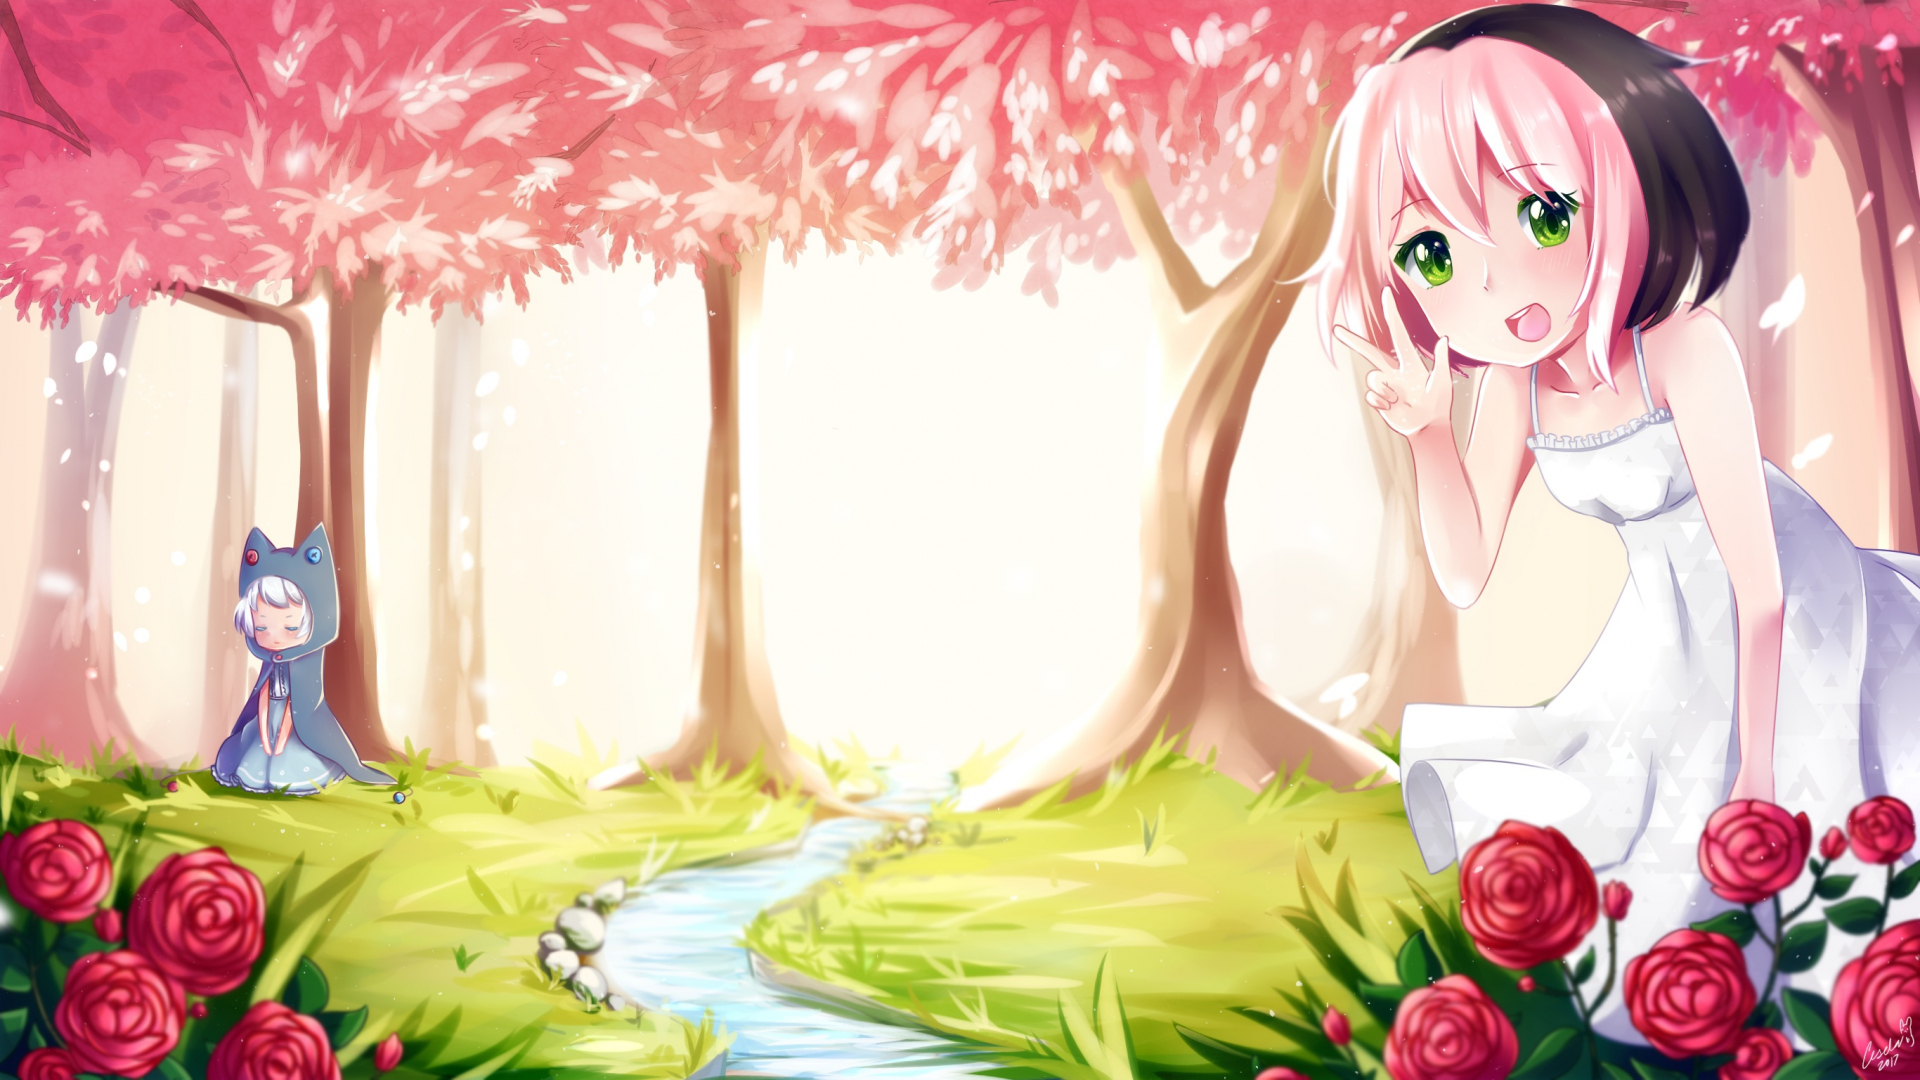 Download 1920x1080 Wallpaper Forest Osu!, Anime, Video Game, Girls